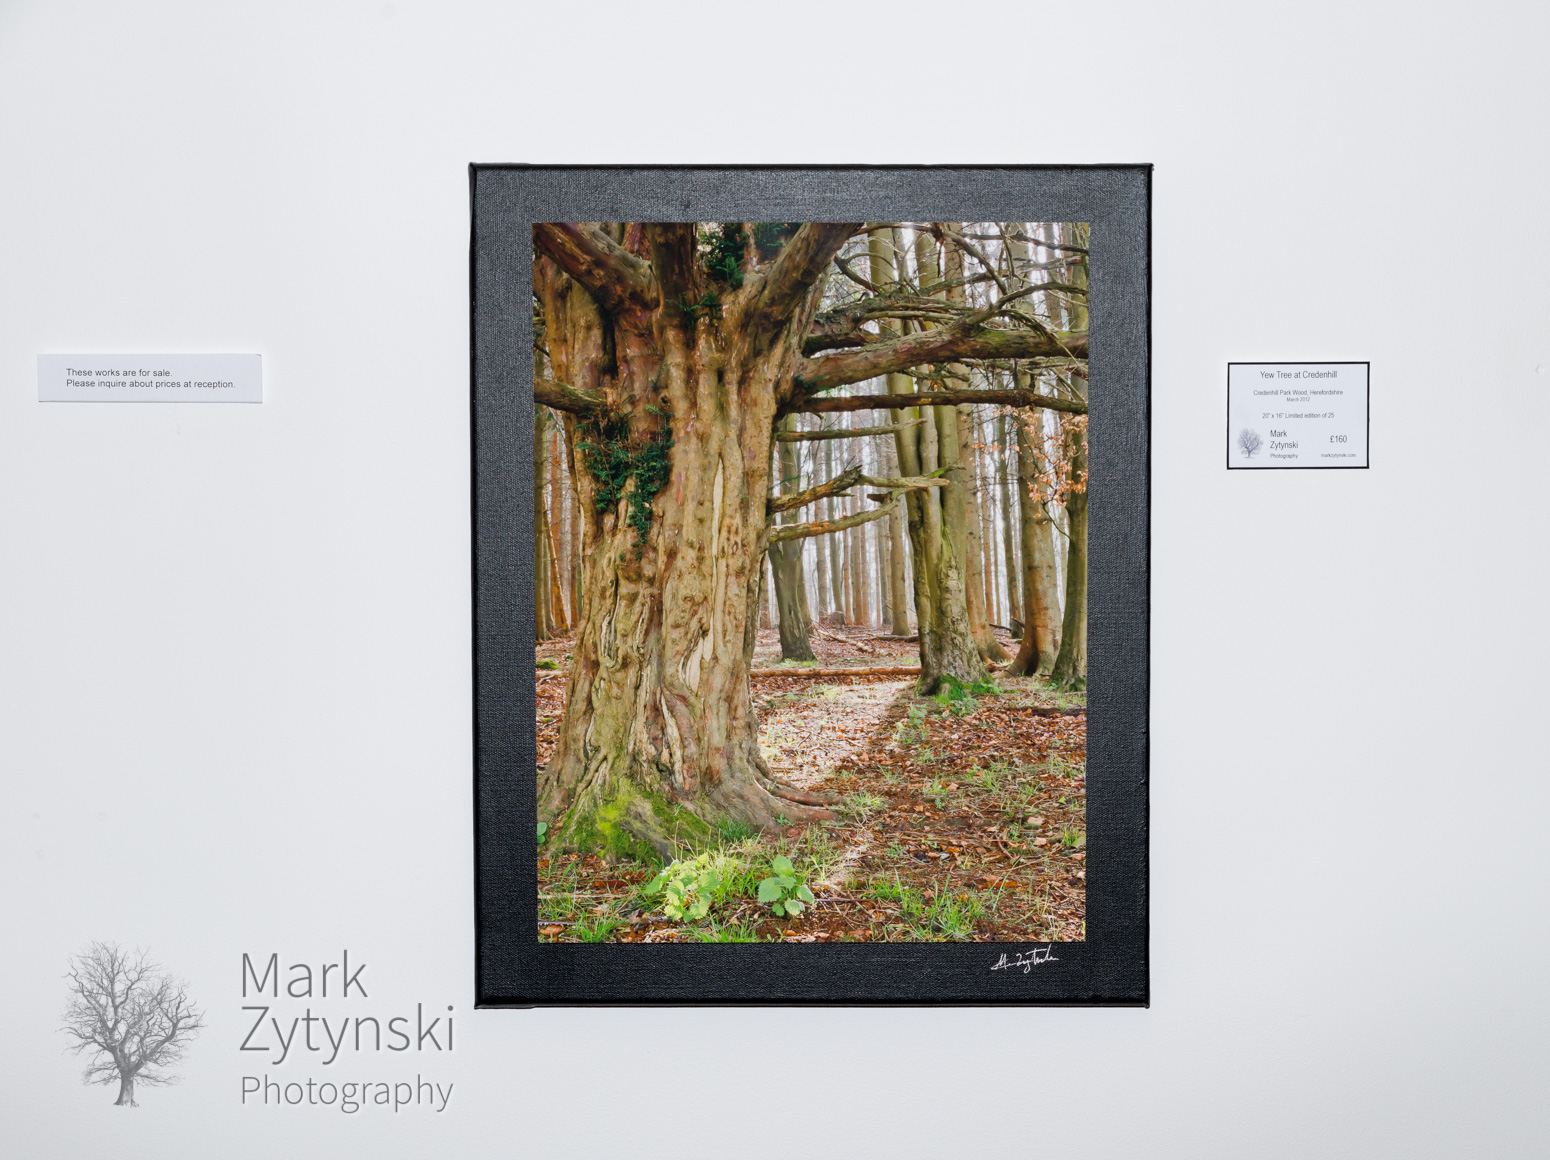 Photography exhibition cardiff business centre